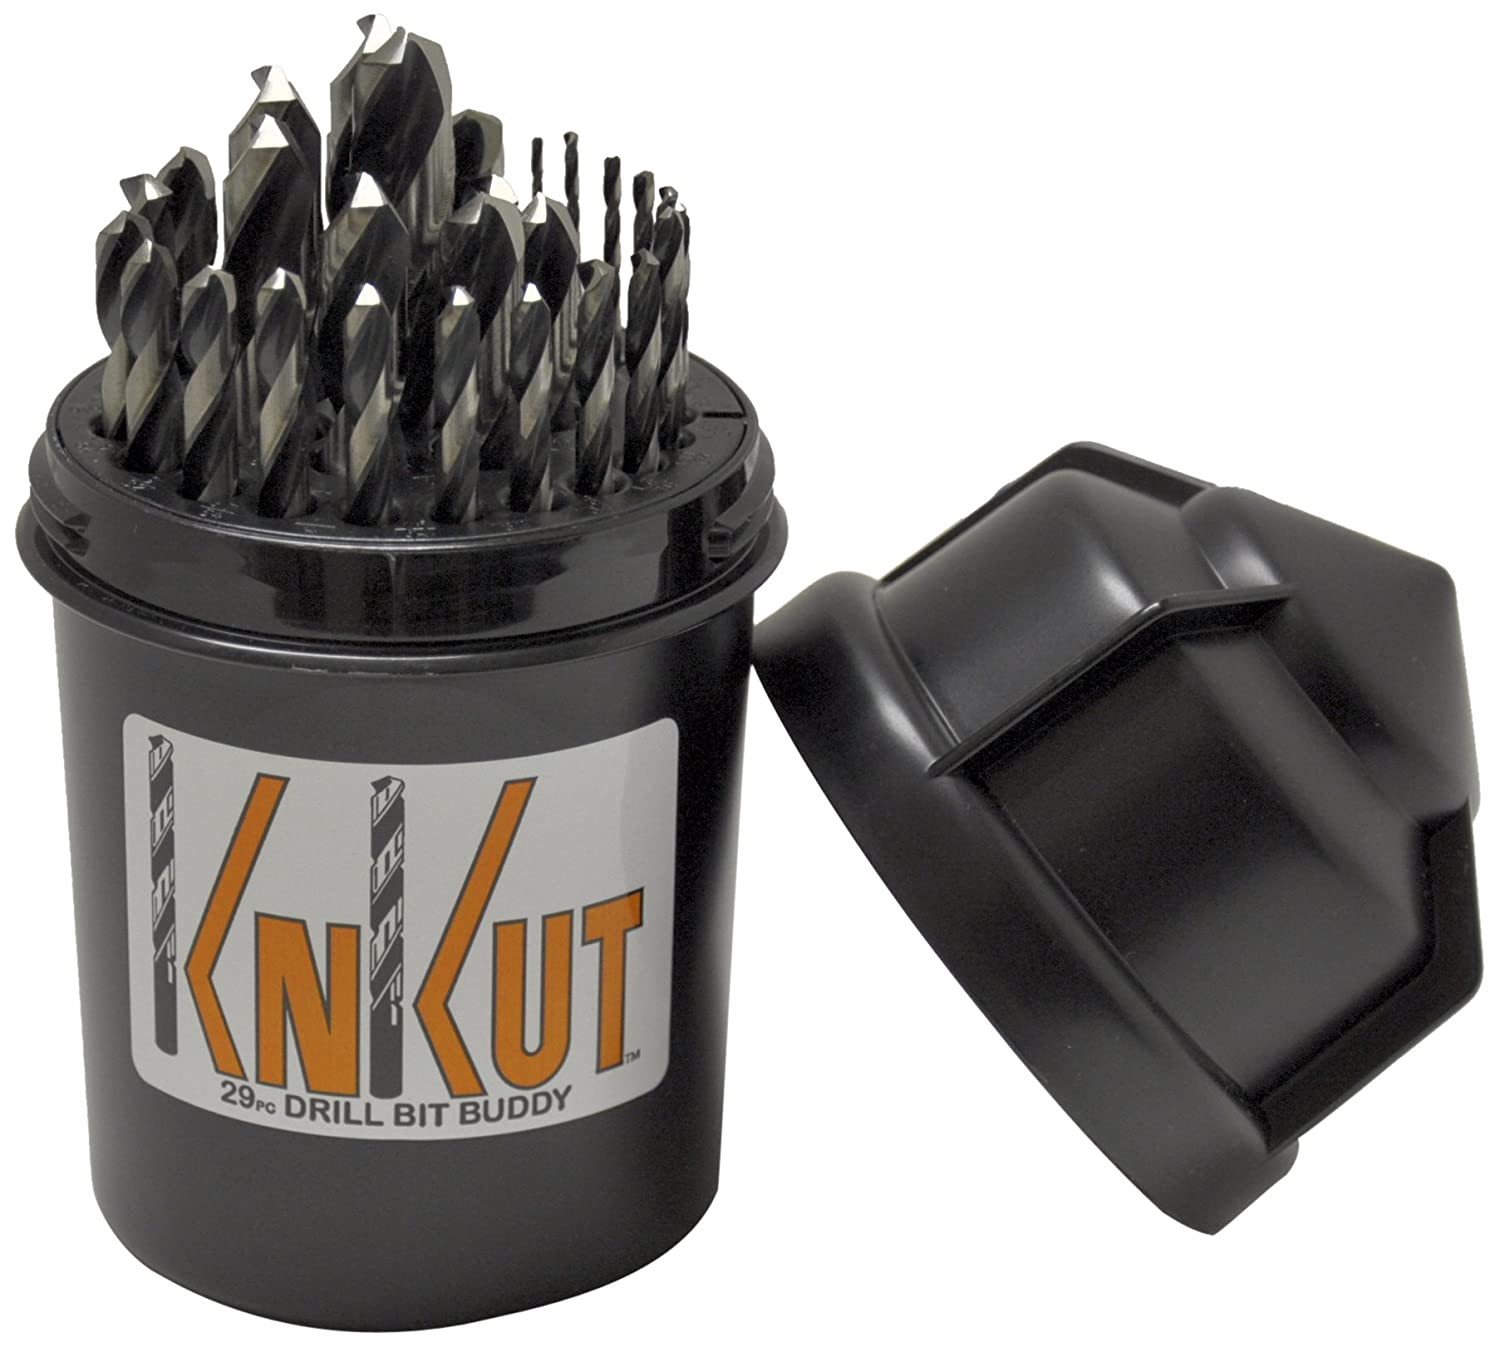 KnKut 29KK5DB Jobber Set for 1//16-Inch to 1//2-Inch by 64ths Drill Buddy 29-Piece